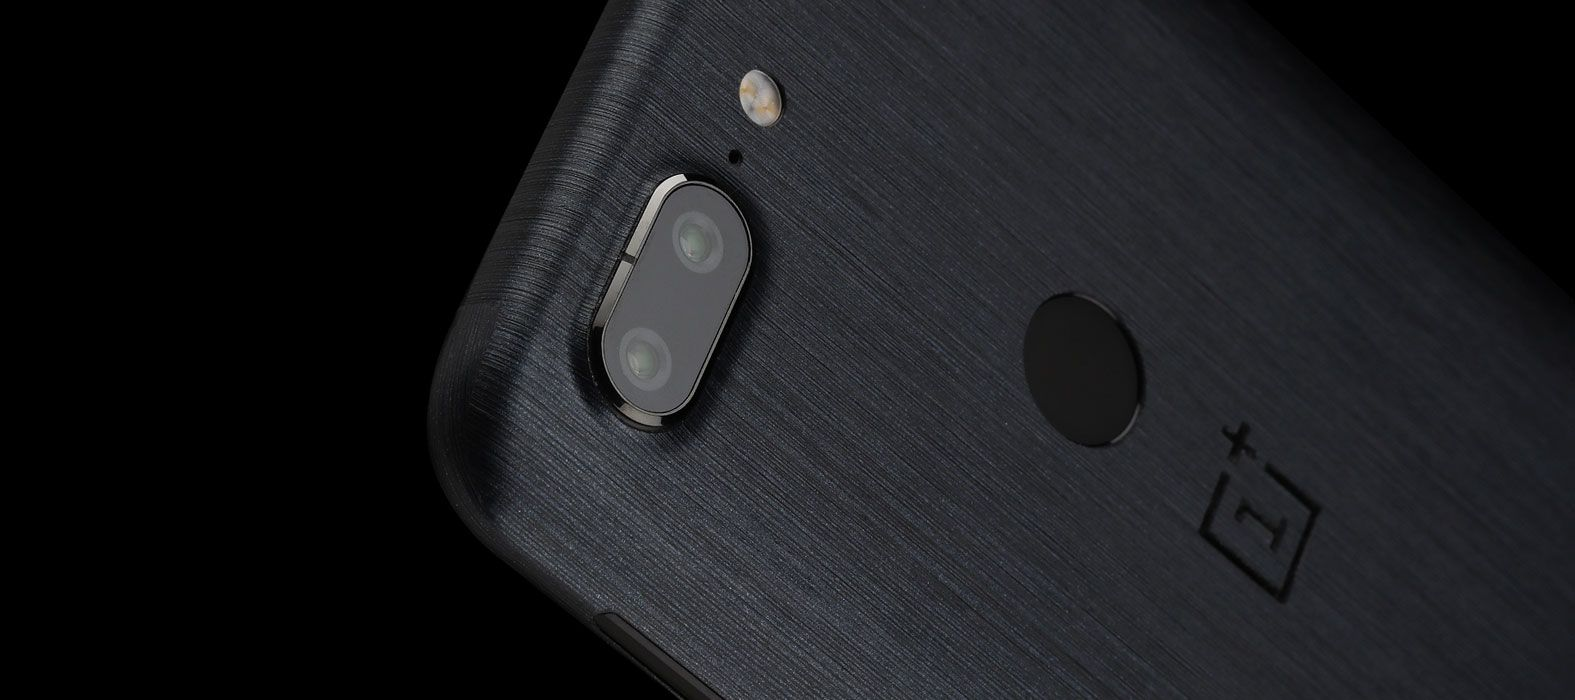 OnePlus 5T Skins, Decals, Wraps - Brushed graphite